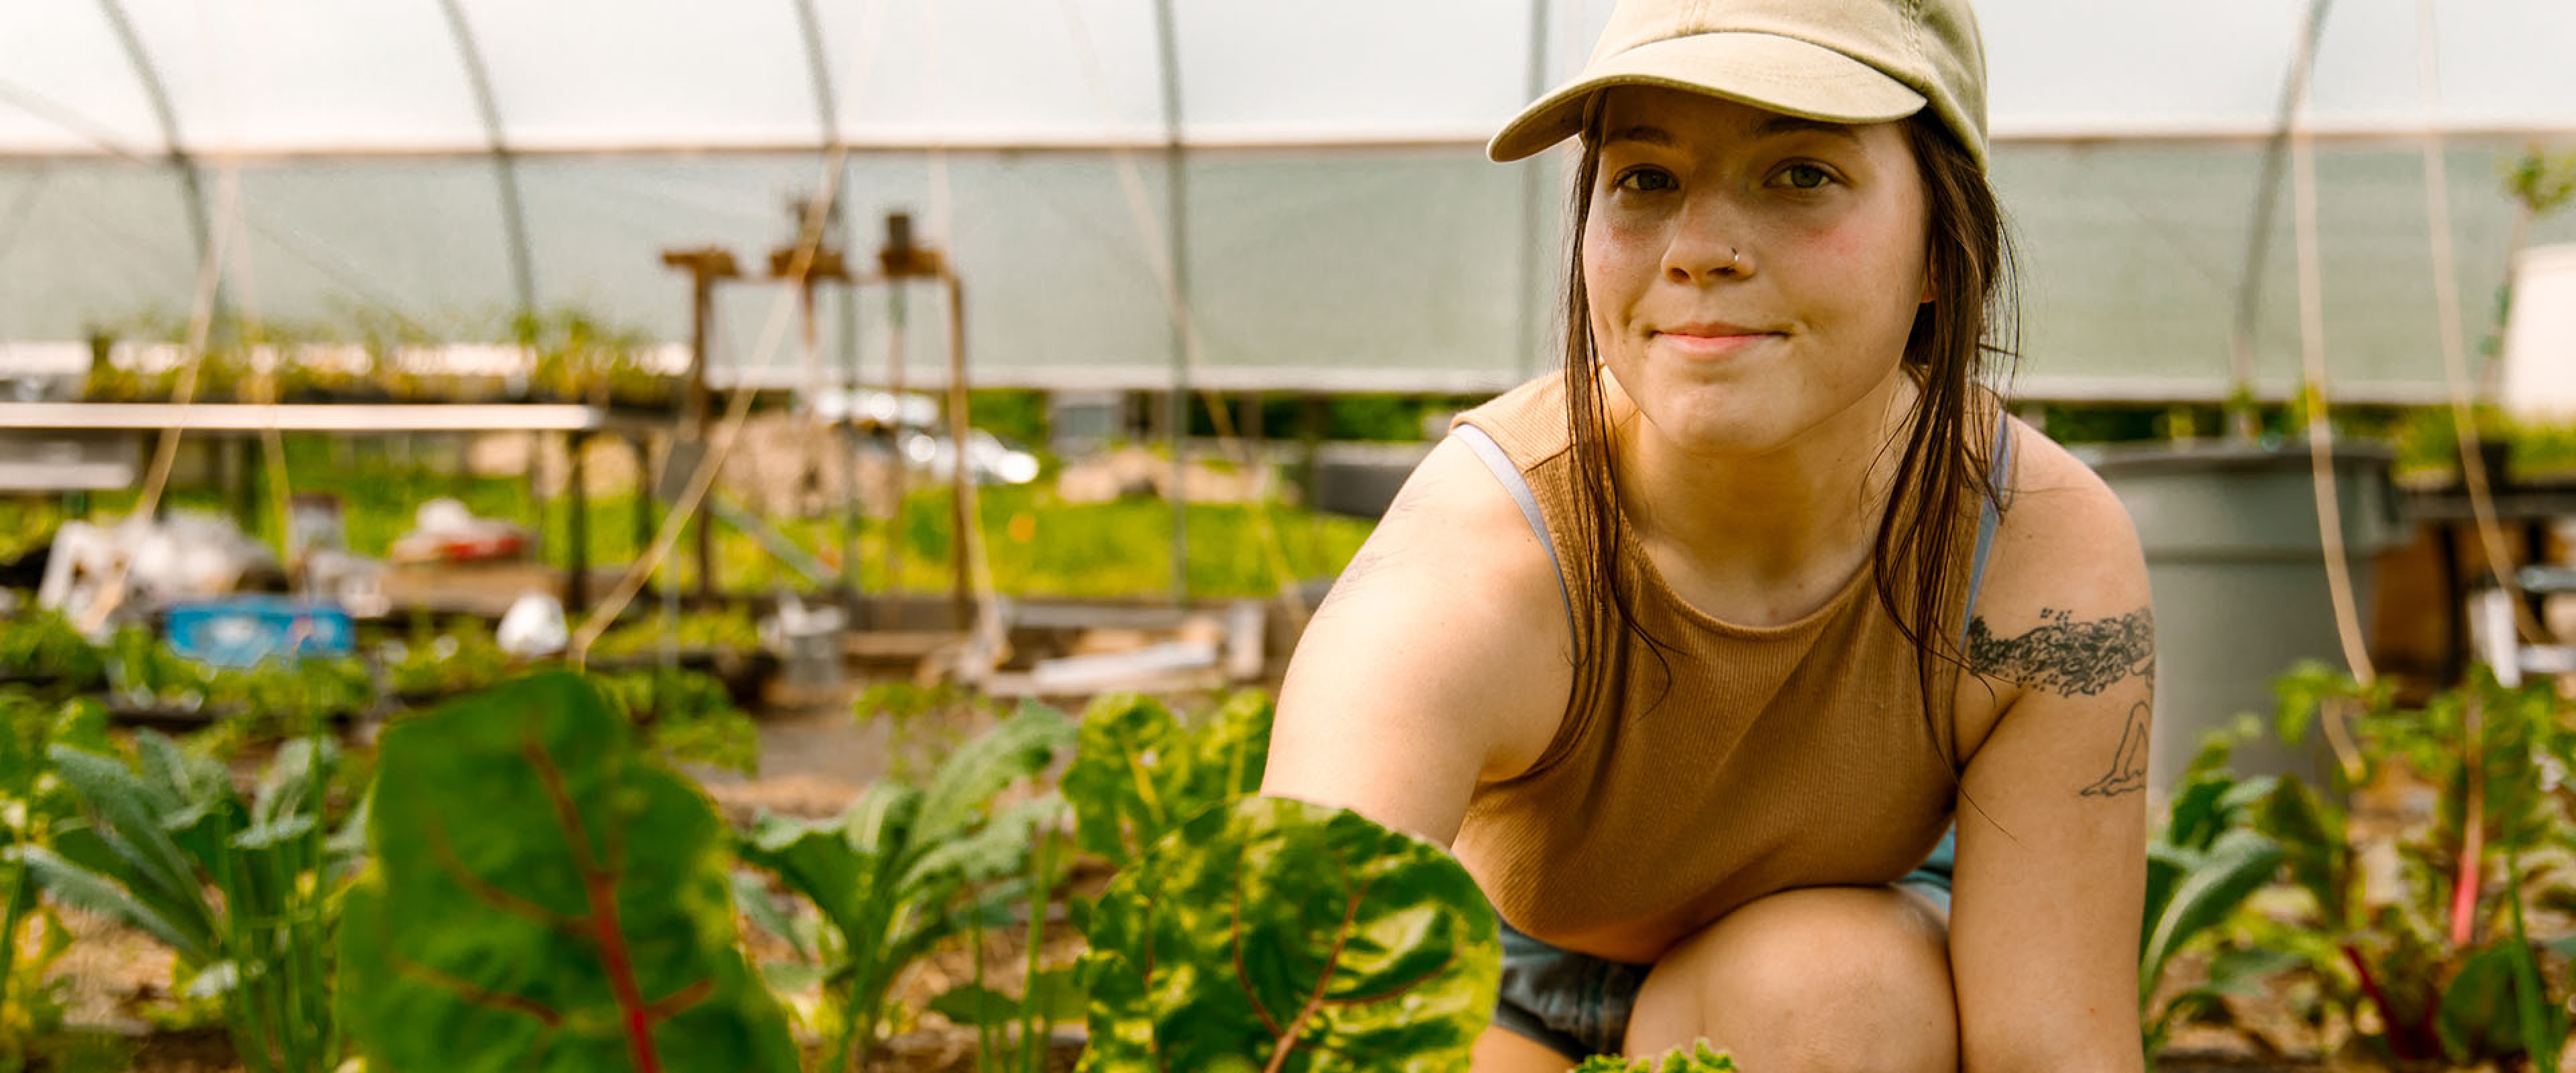 A WMU student tends to plants in a greenhouse